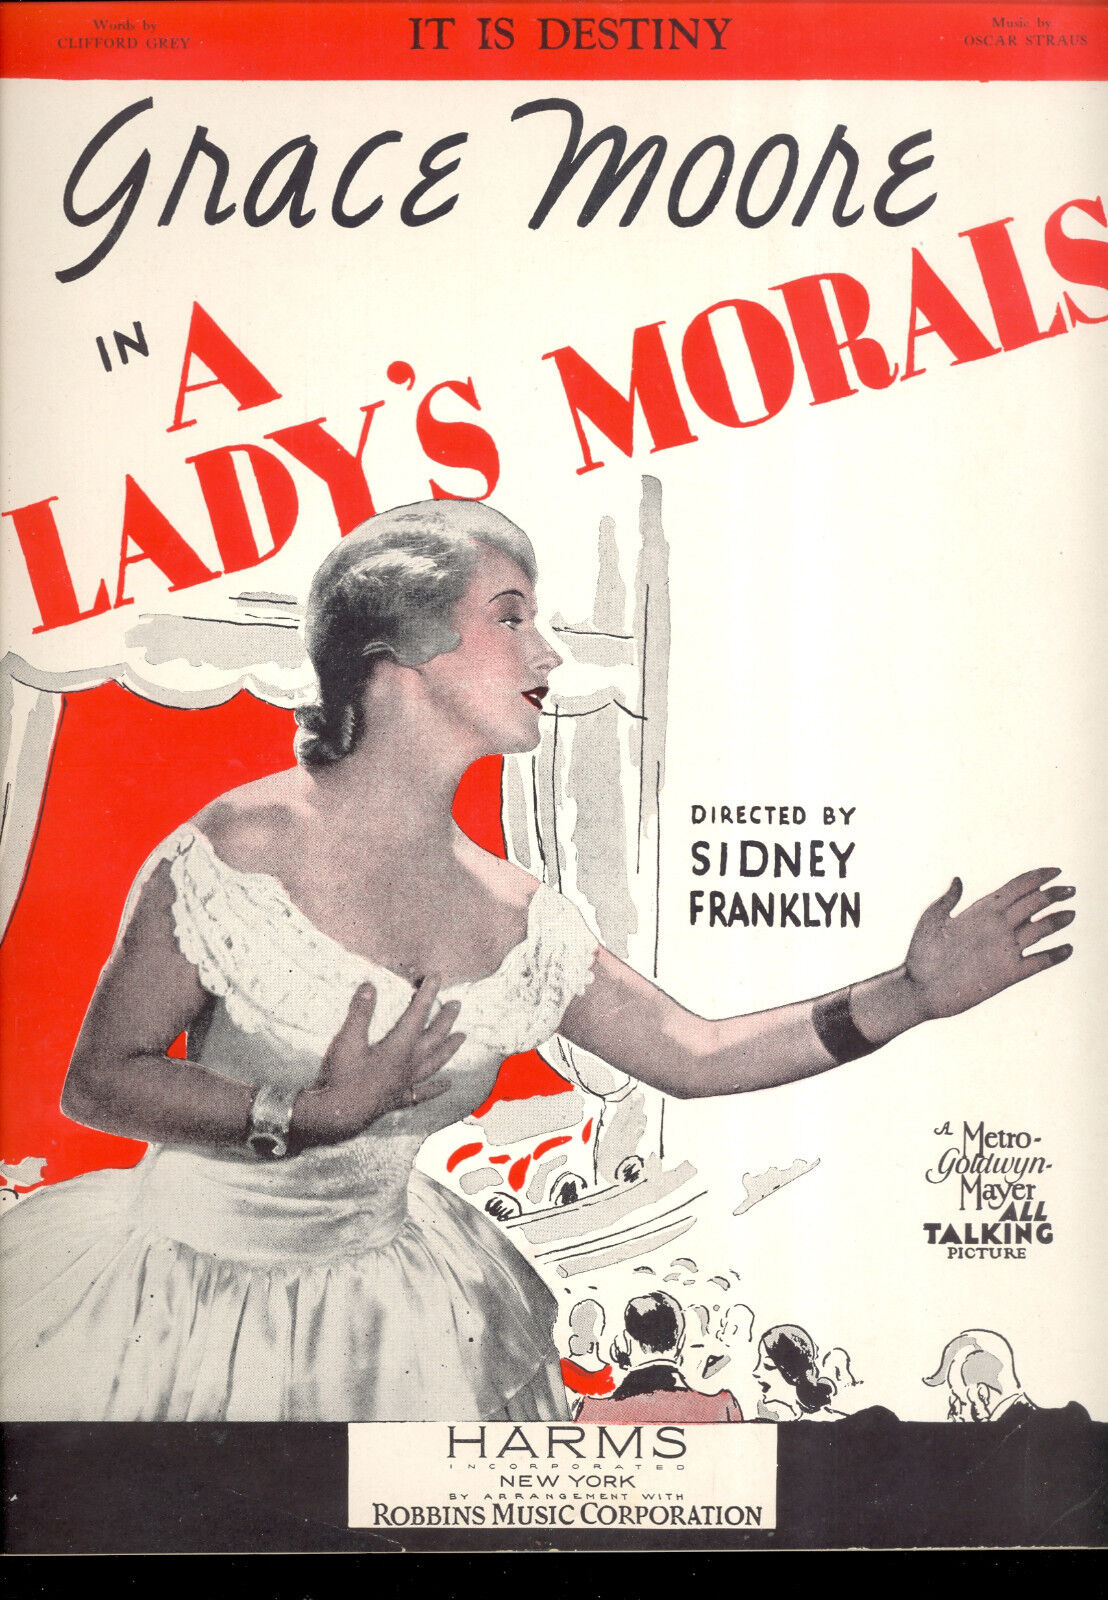 A LADY'S MORALS Sheet Music